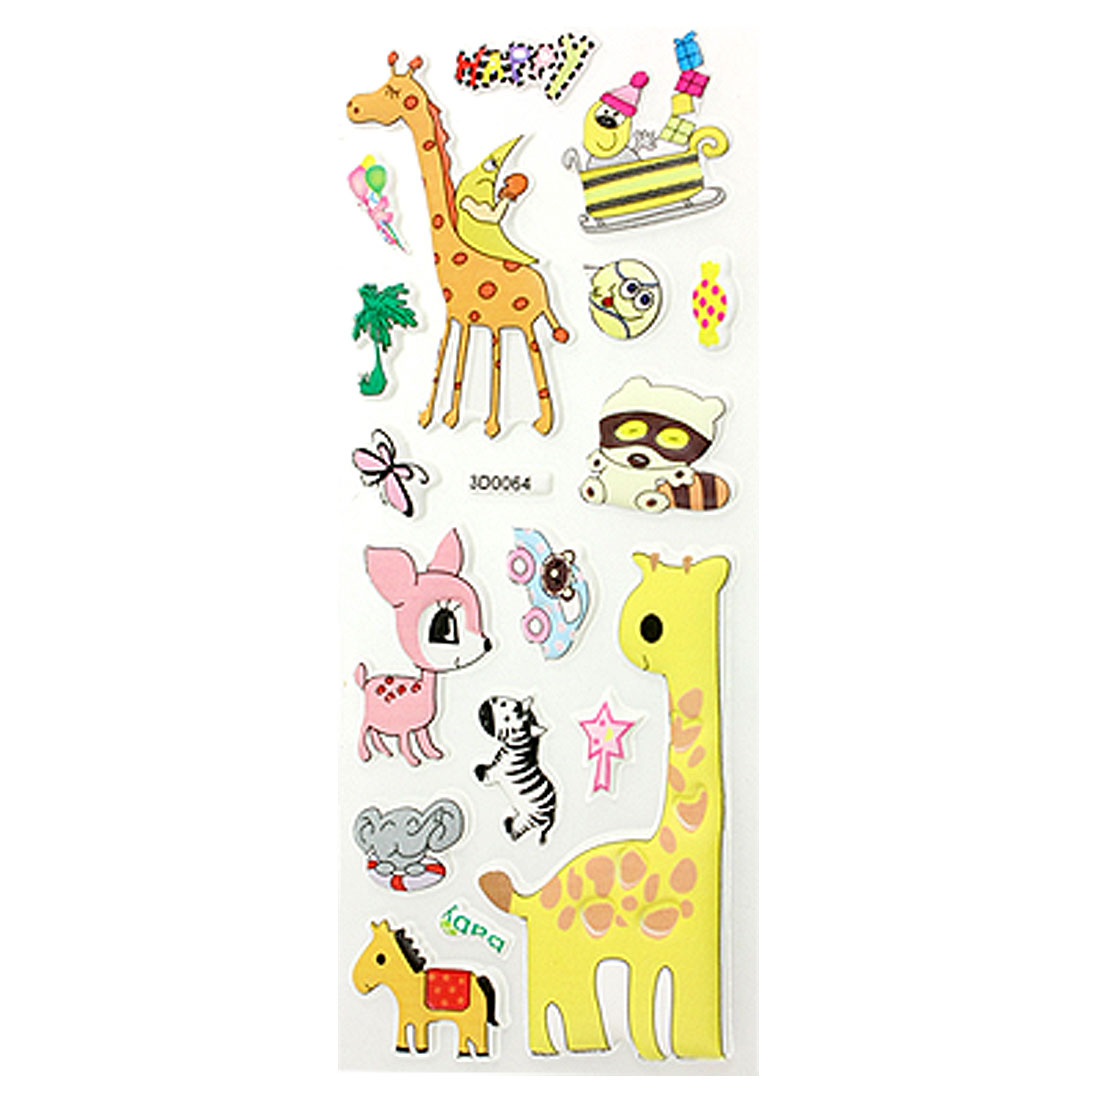 Phone-MP3-Desk-Clock-3D-Foam-Ornament-Animals-Shape-Stickers-18-Pcs